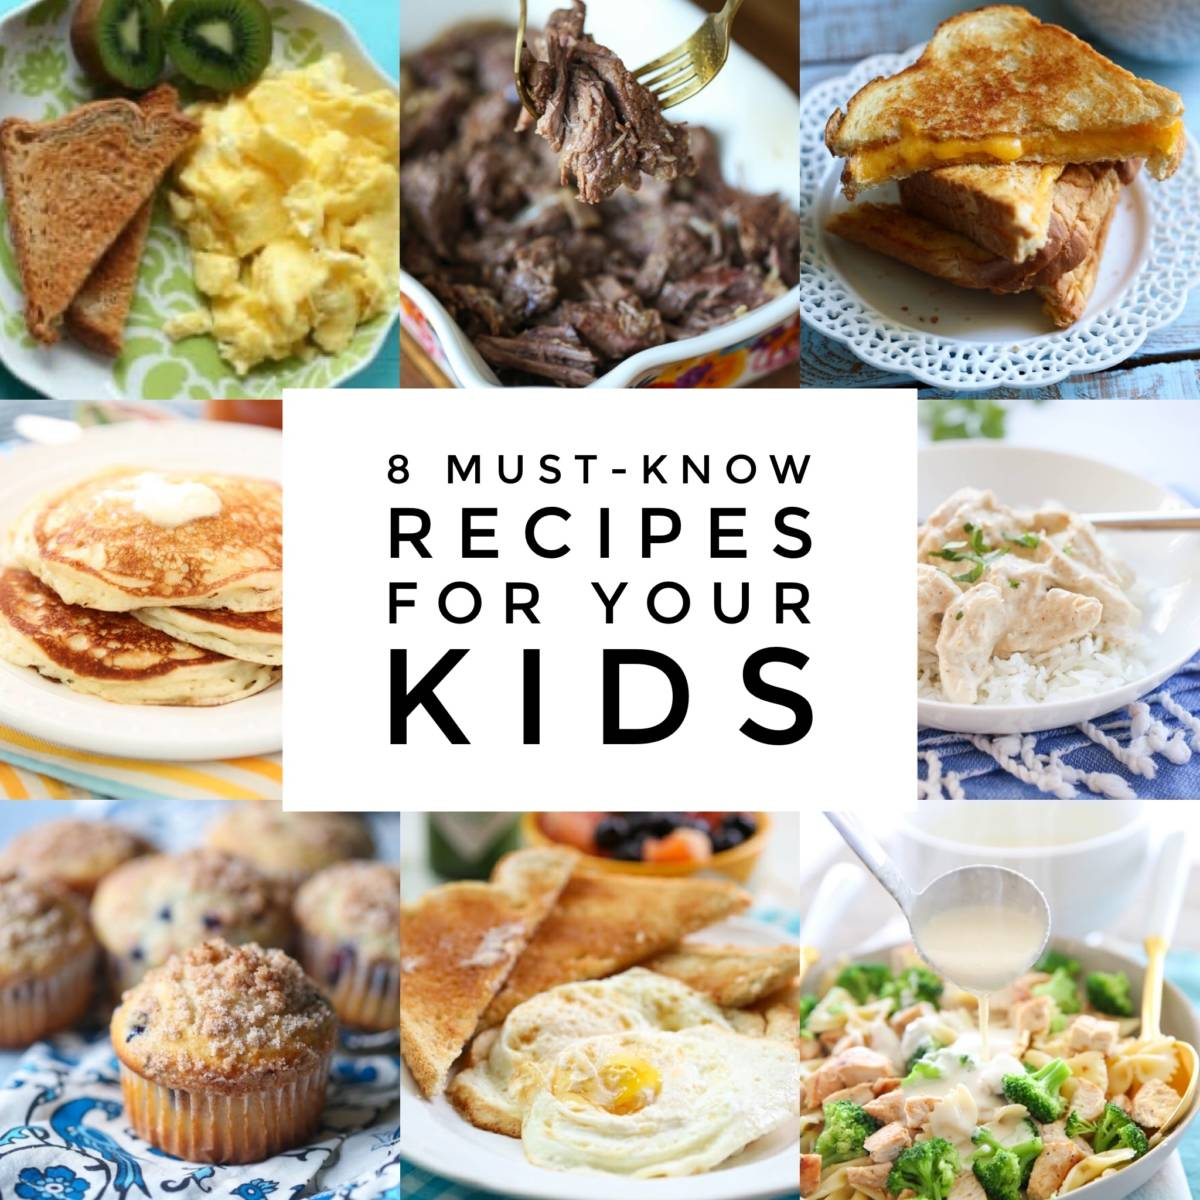 8 must know recipes for kids